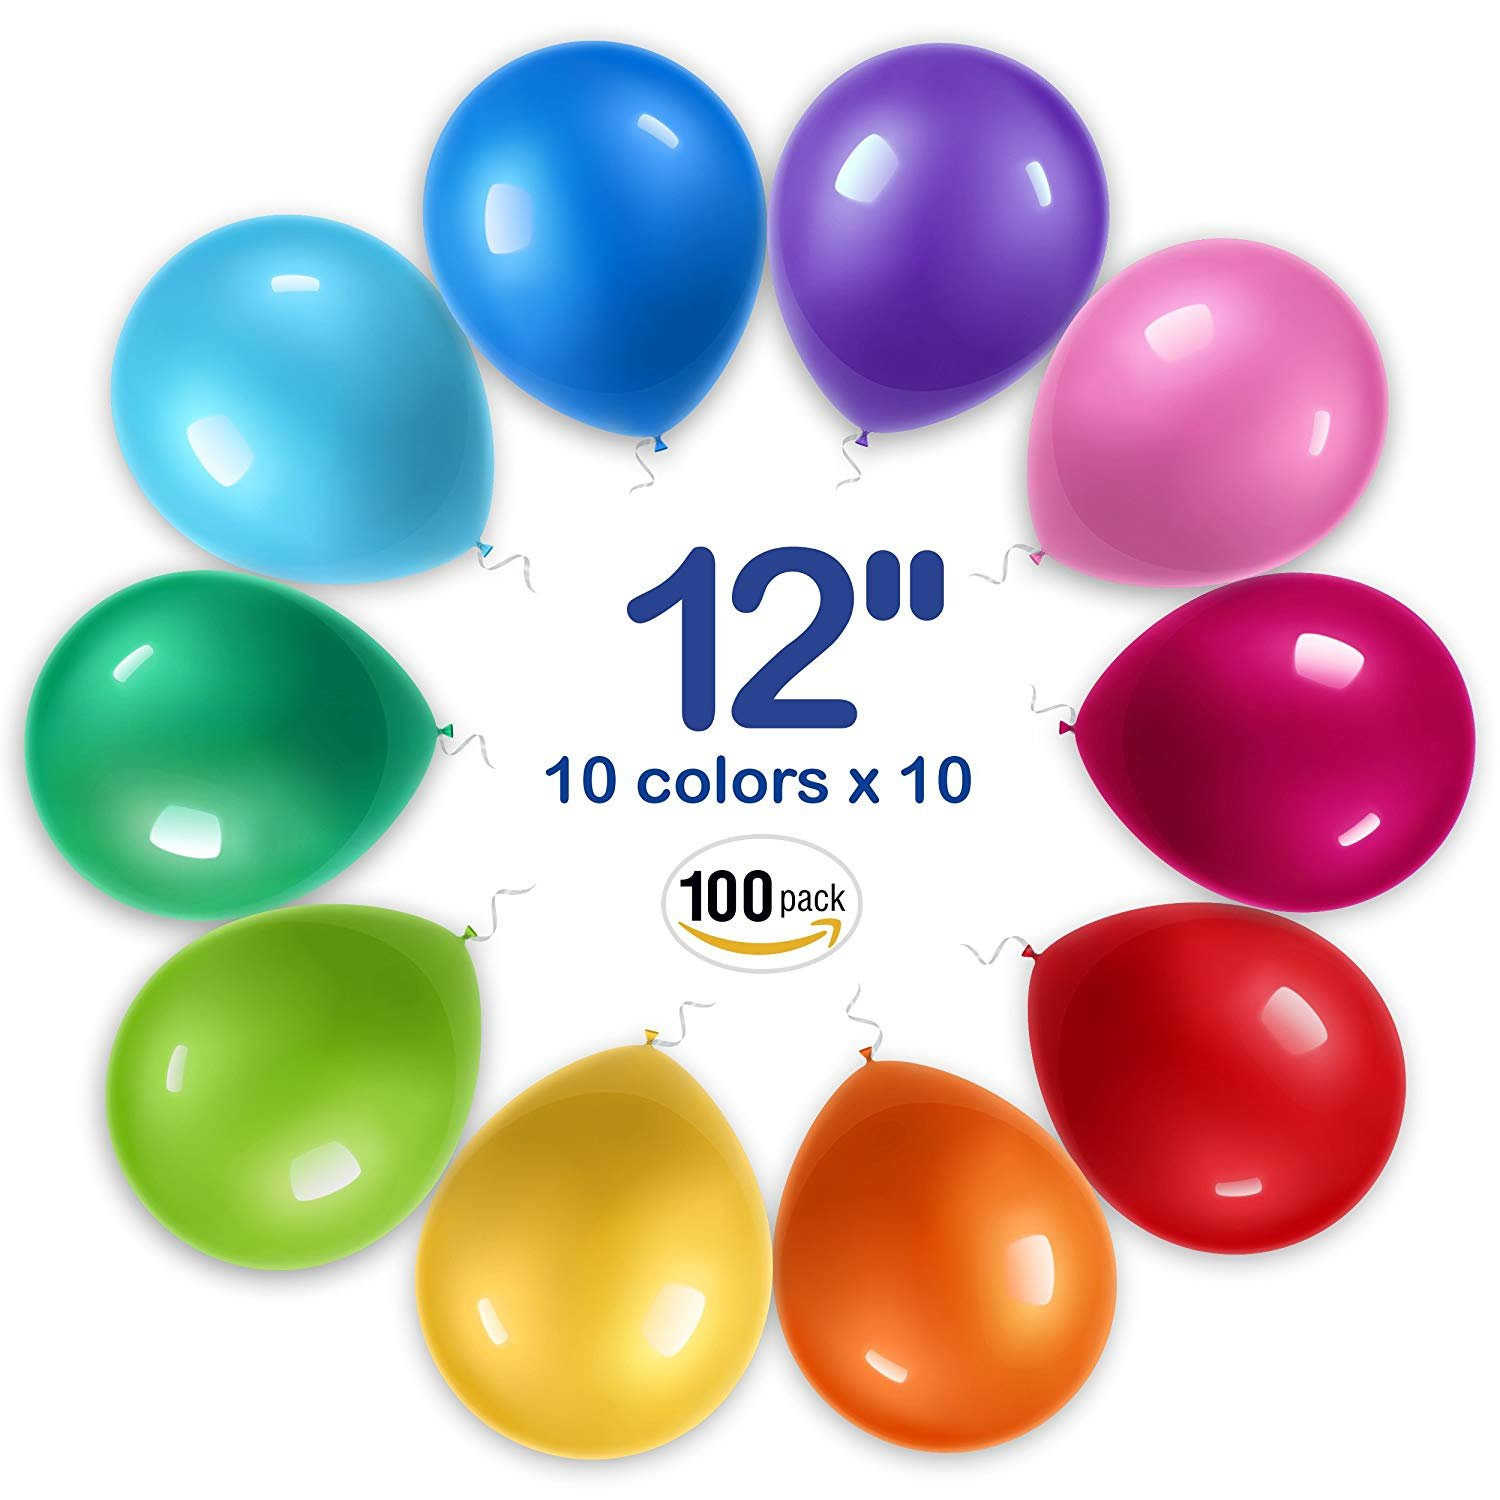 WinkyBoom Balloons Assorted Color 12 Inch 100 Pcs Helium Quality Latex For Party Decoration WinkyBoom Inc e36